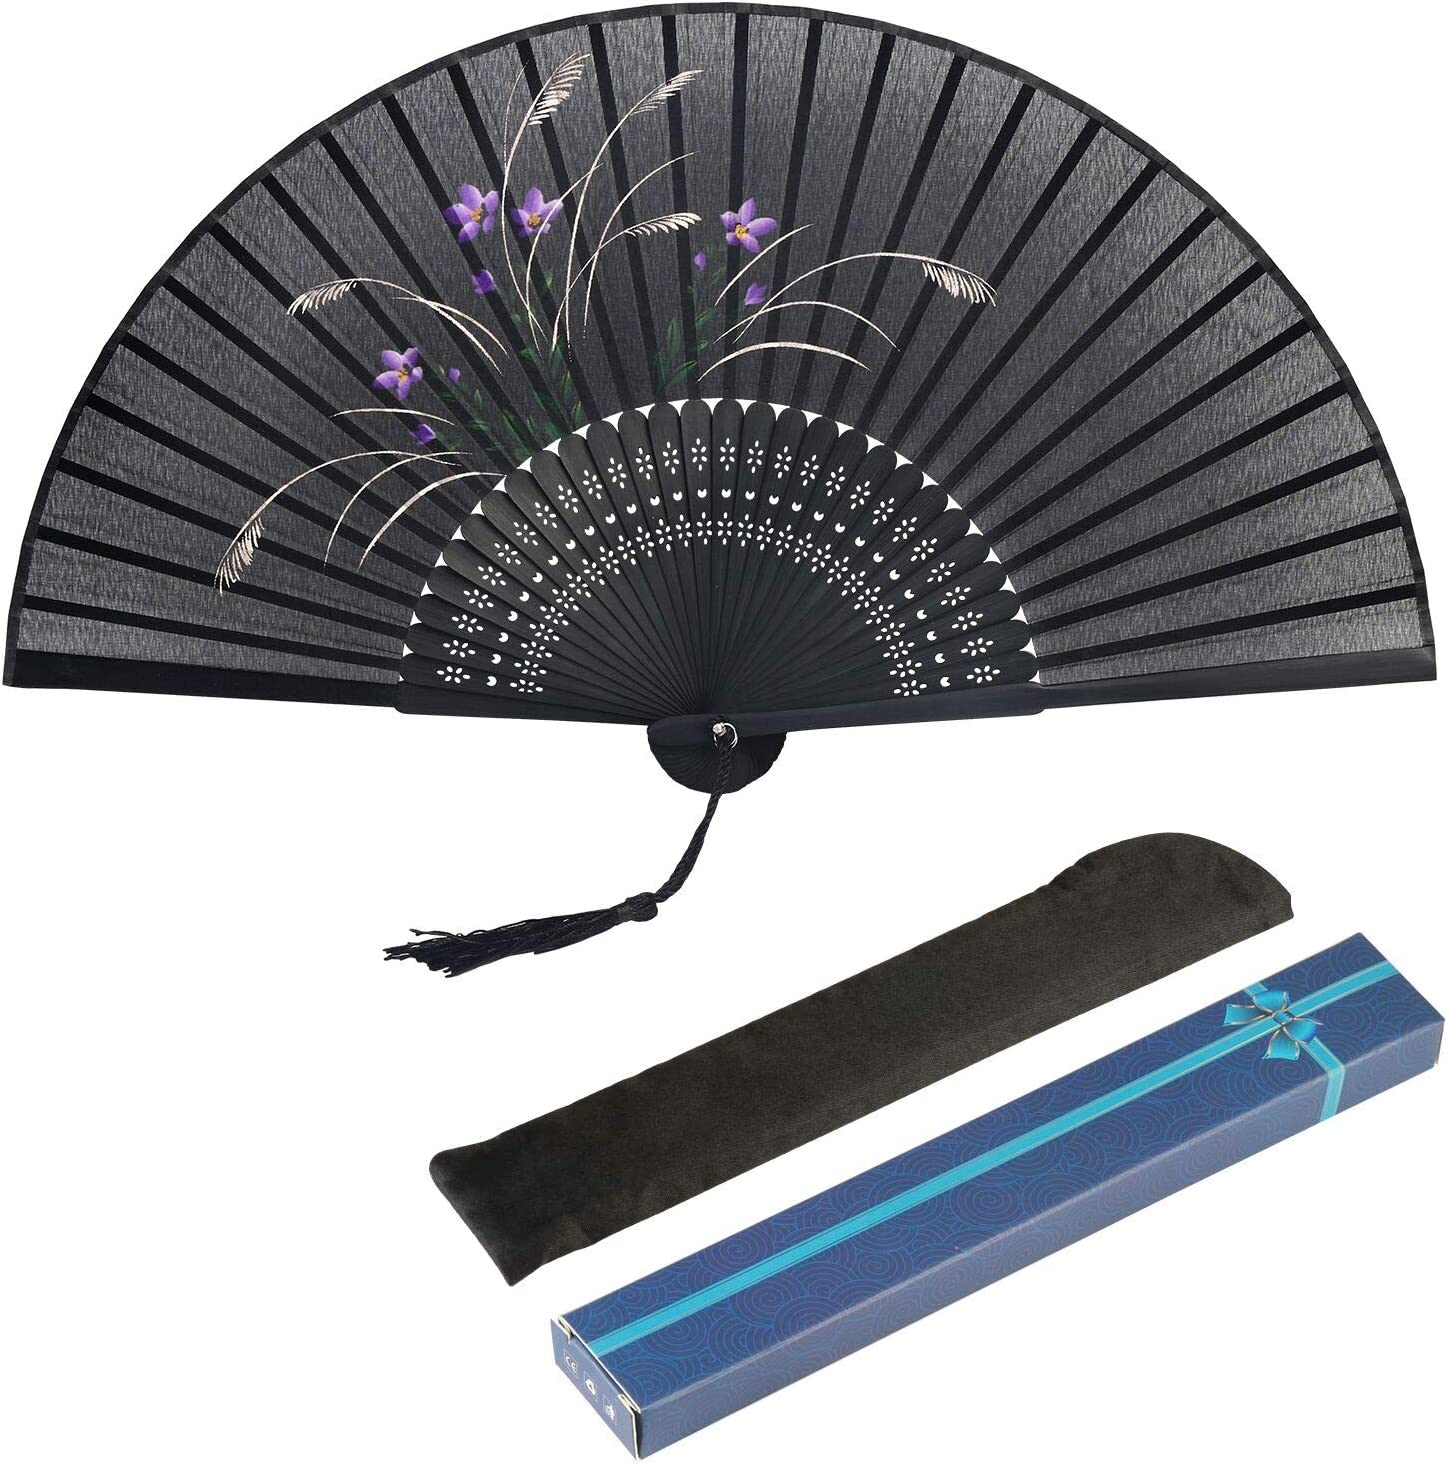 Black Hand Fan Metable Silk Fabric Orchid Pattern Bamboo Handheld Folding Fan Chinese Oriental Style Handmade For DIY Wall Decoration Wedding Party Dancing Show Props Gift Boxed